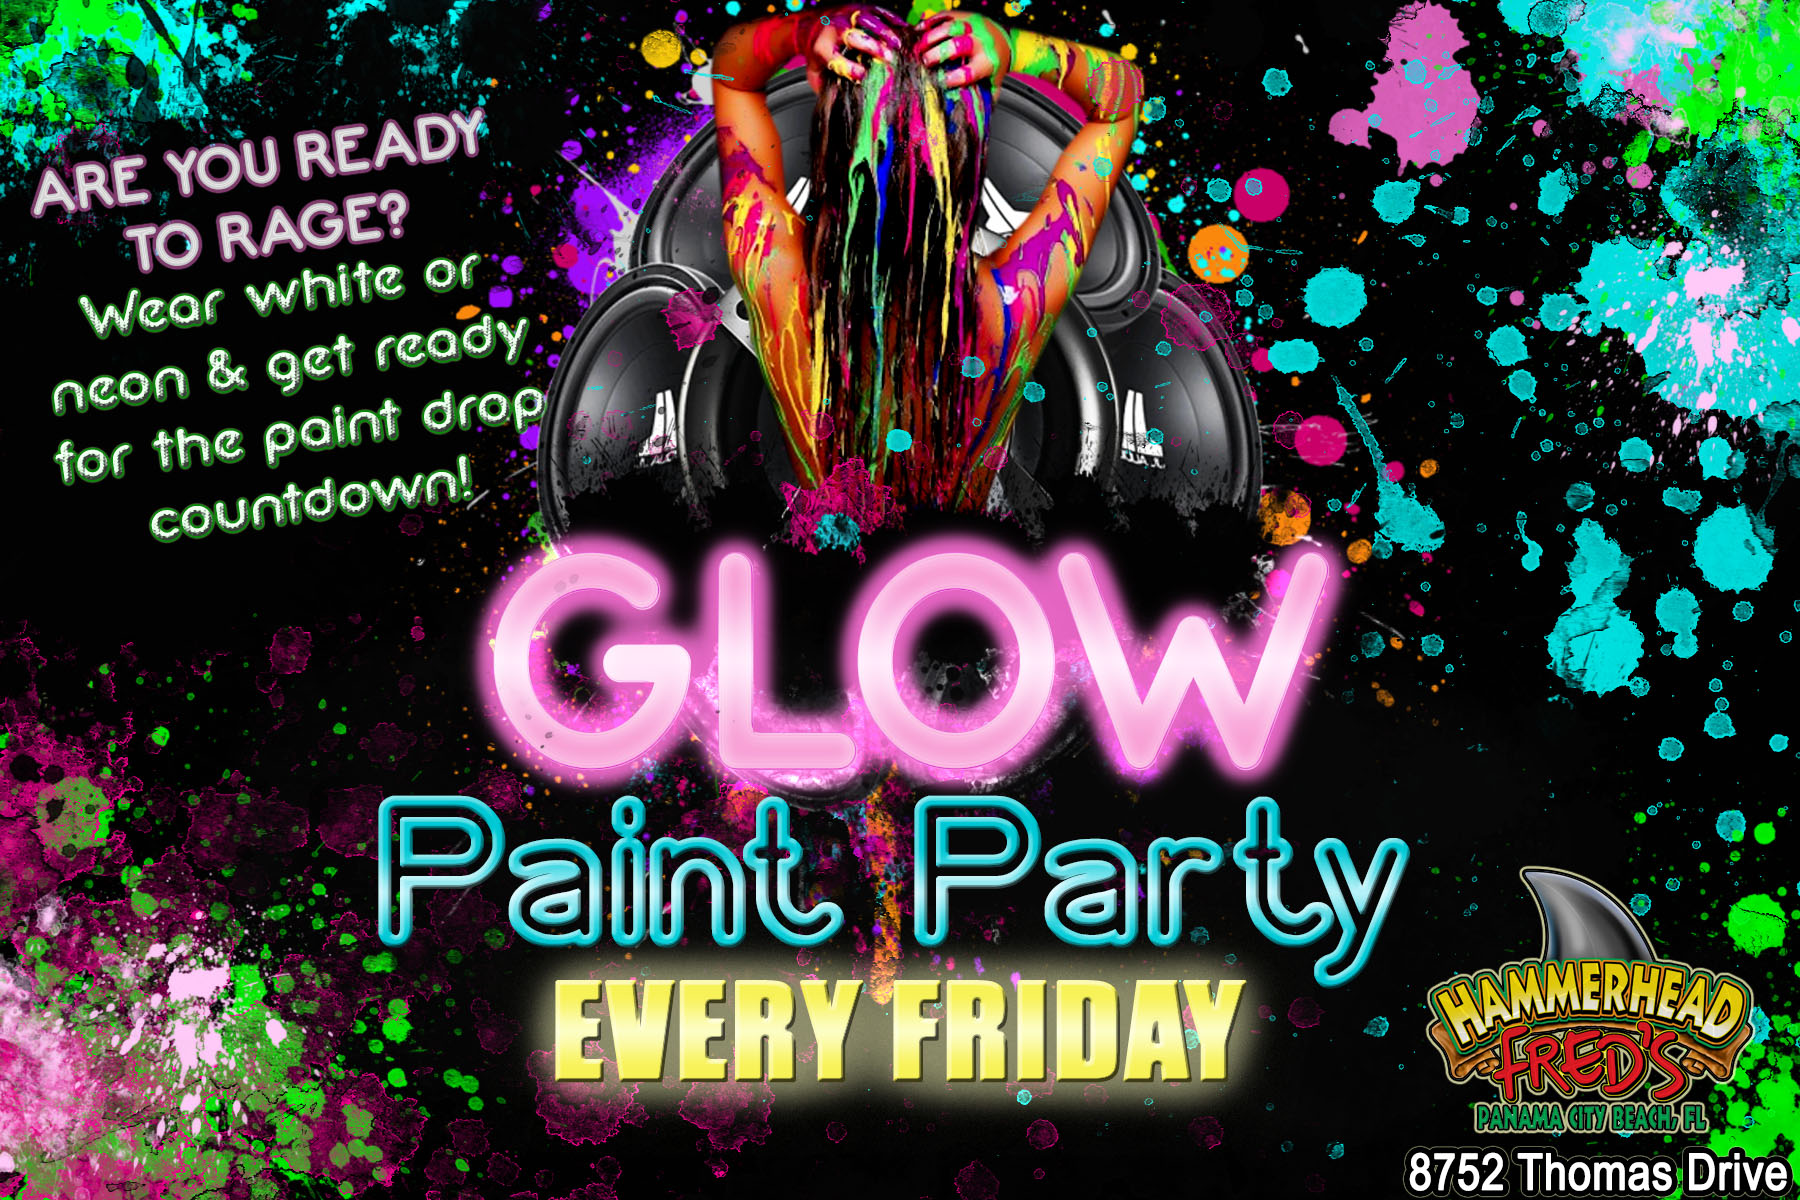 Hammerhead Fred S Glow Paint Party